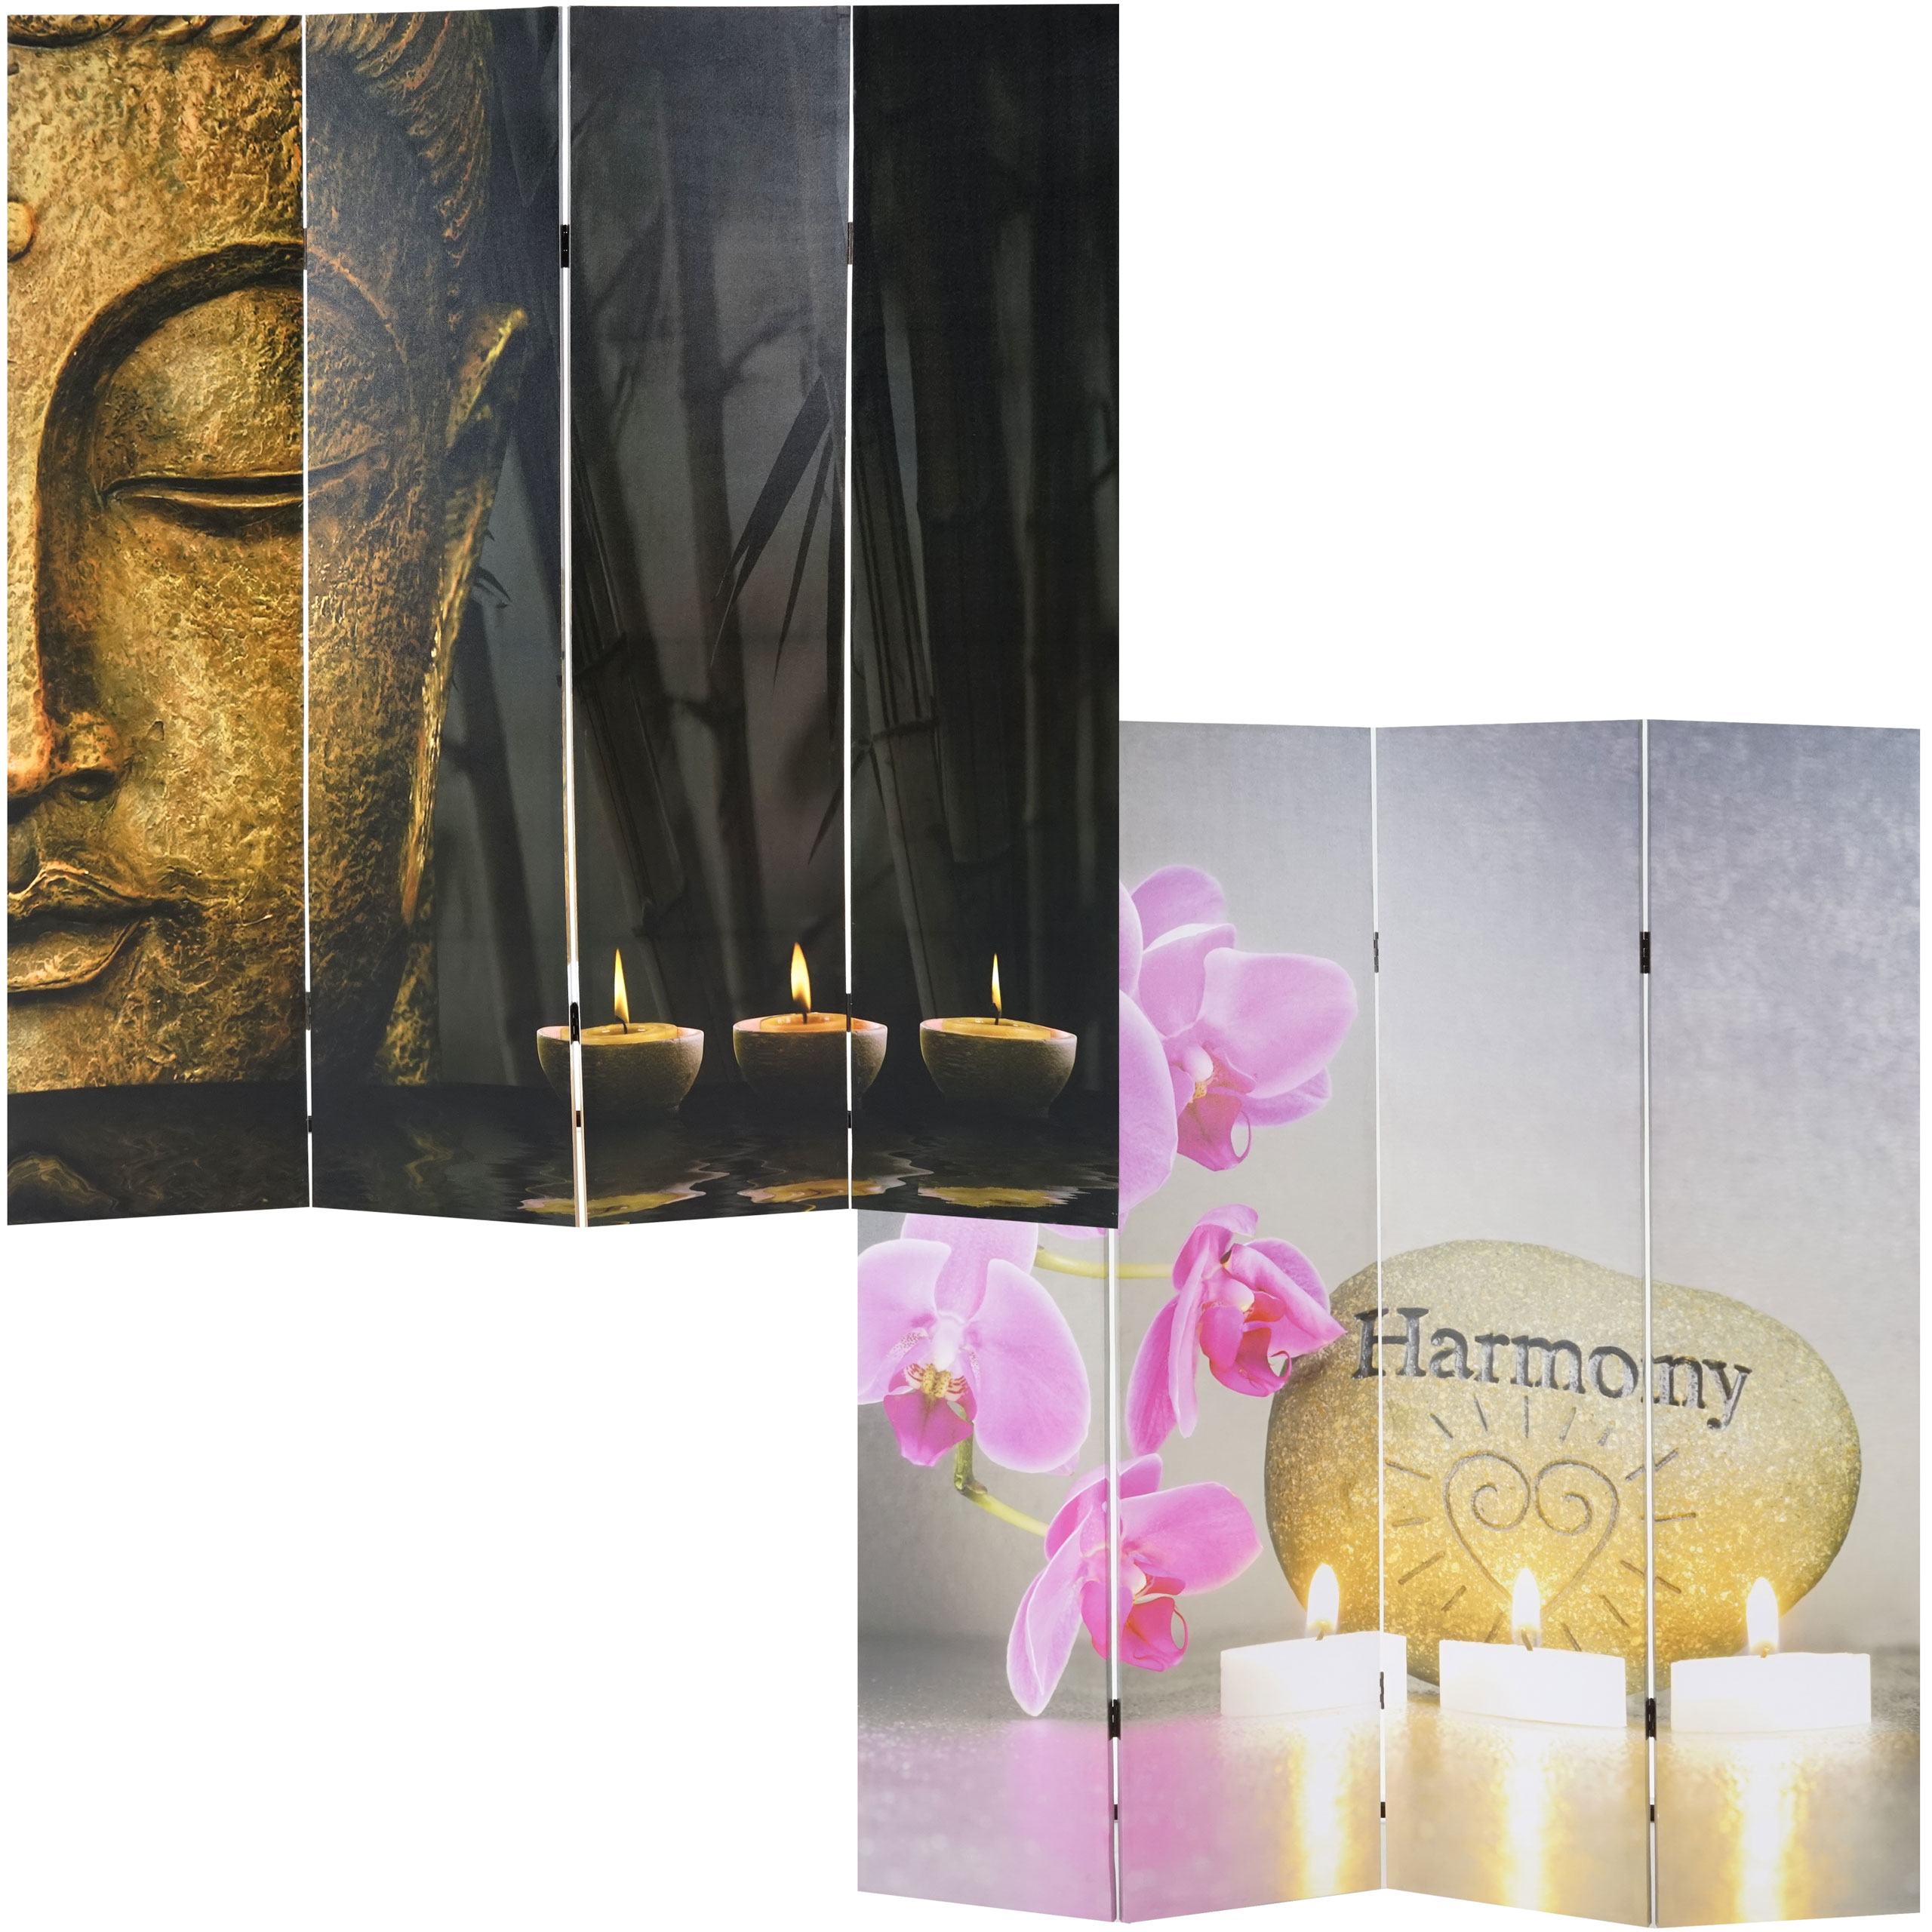 foto paravent buddha paravent raumteiler trennwand 180x160 cm. Black Bedroom Furniture Sets. Home Design Ideas